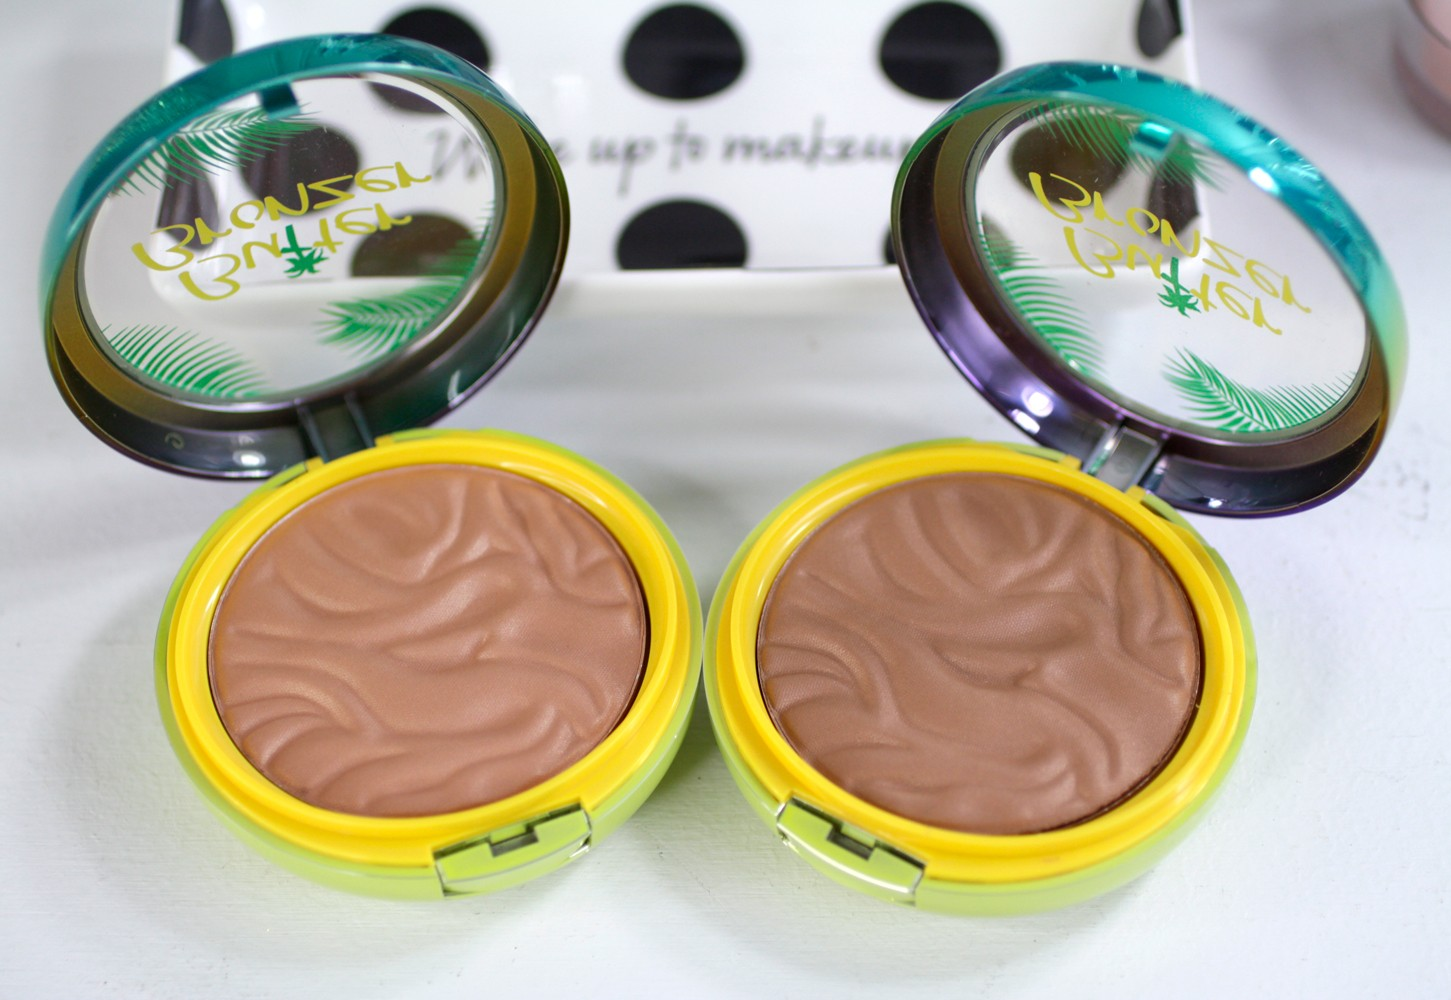 Physicians Formula Butter Bronzer Sunkissed and Deep shades